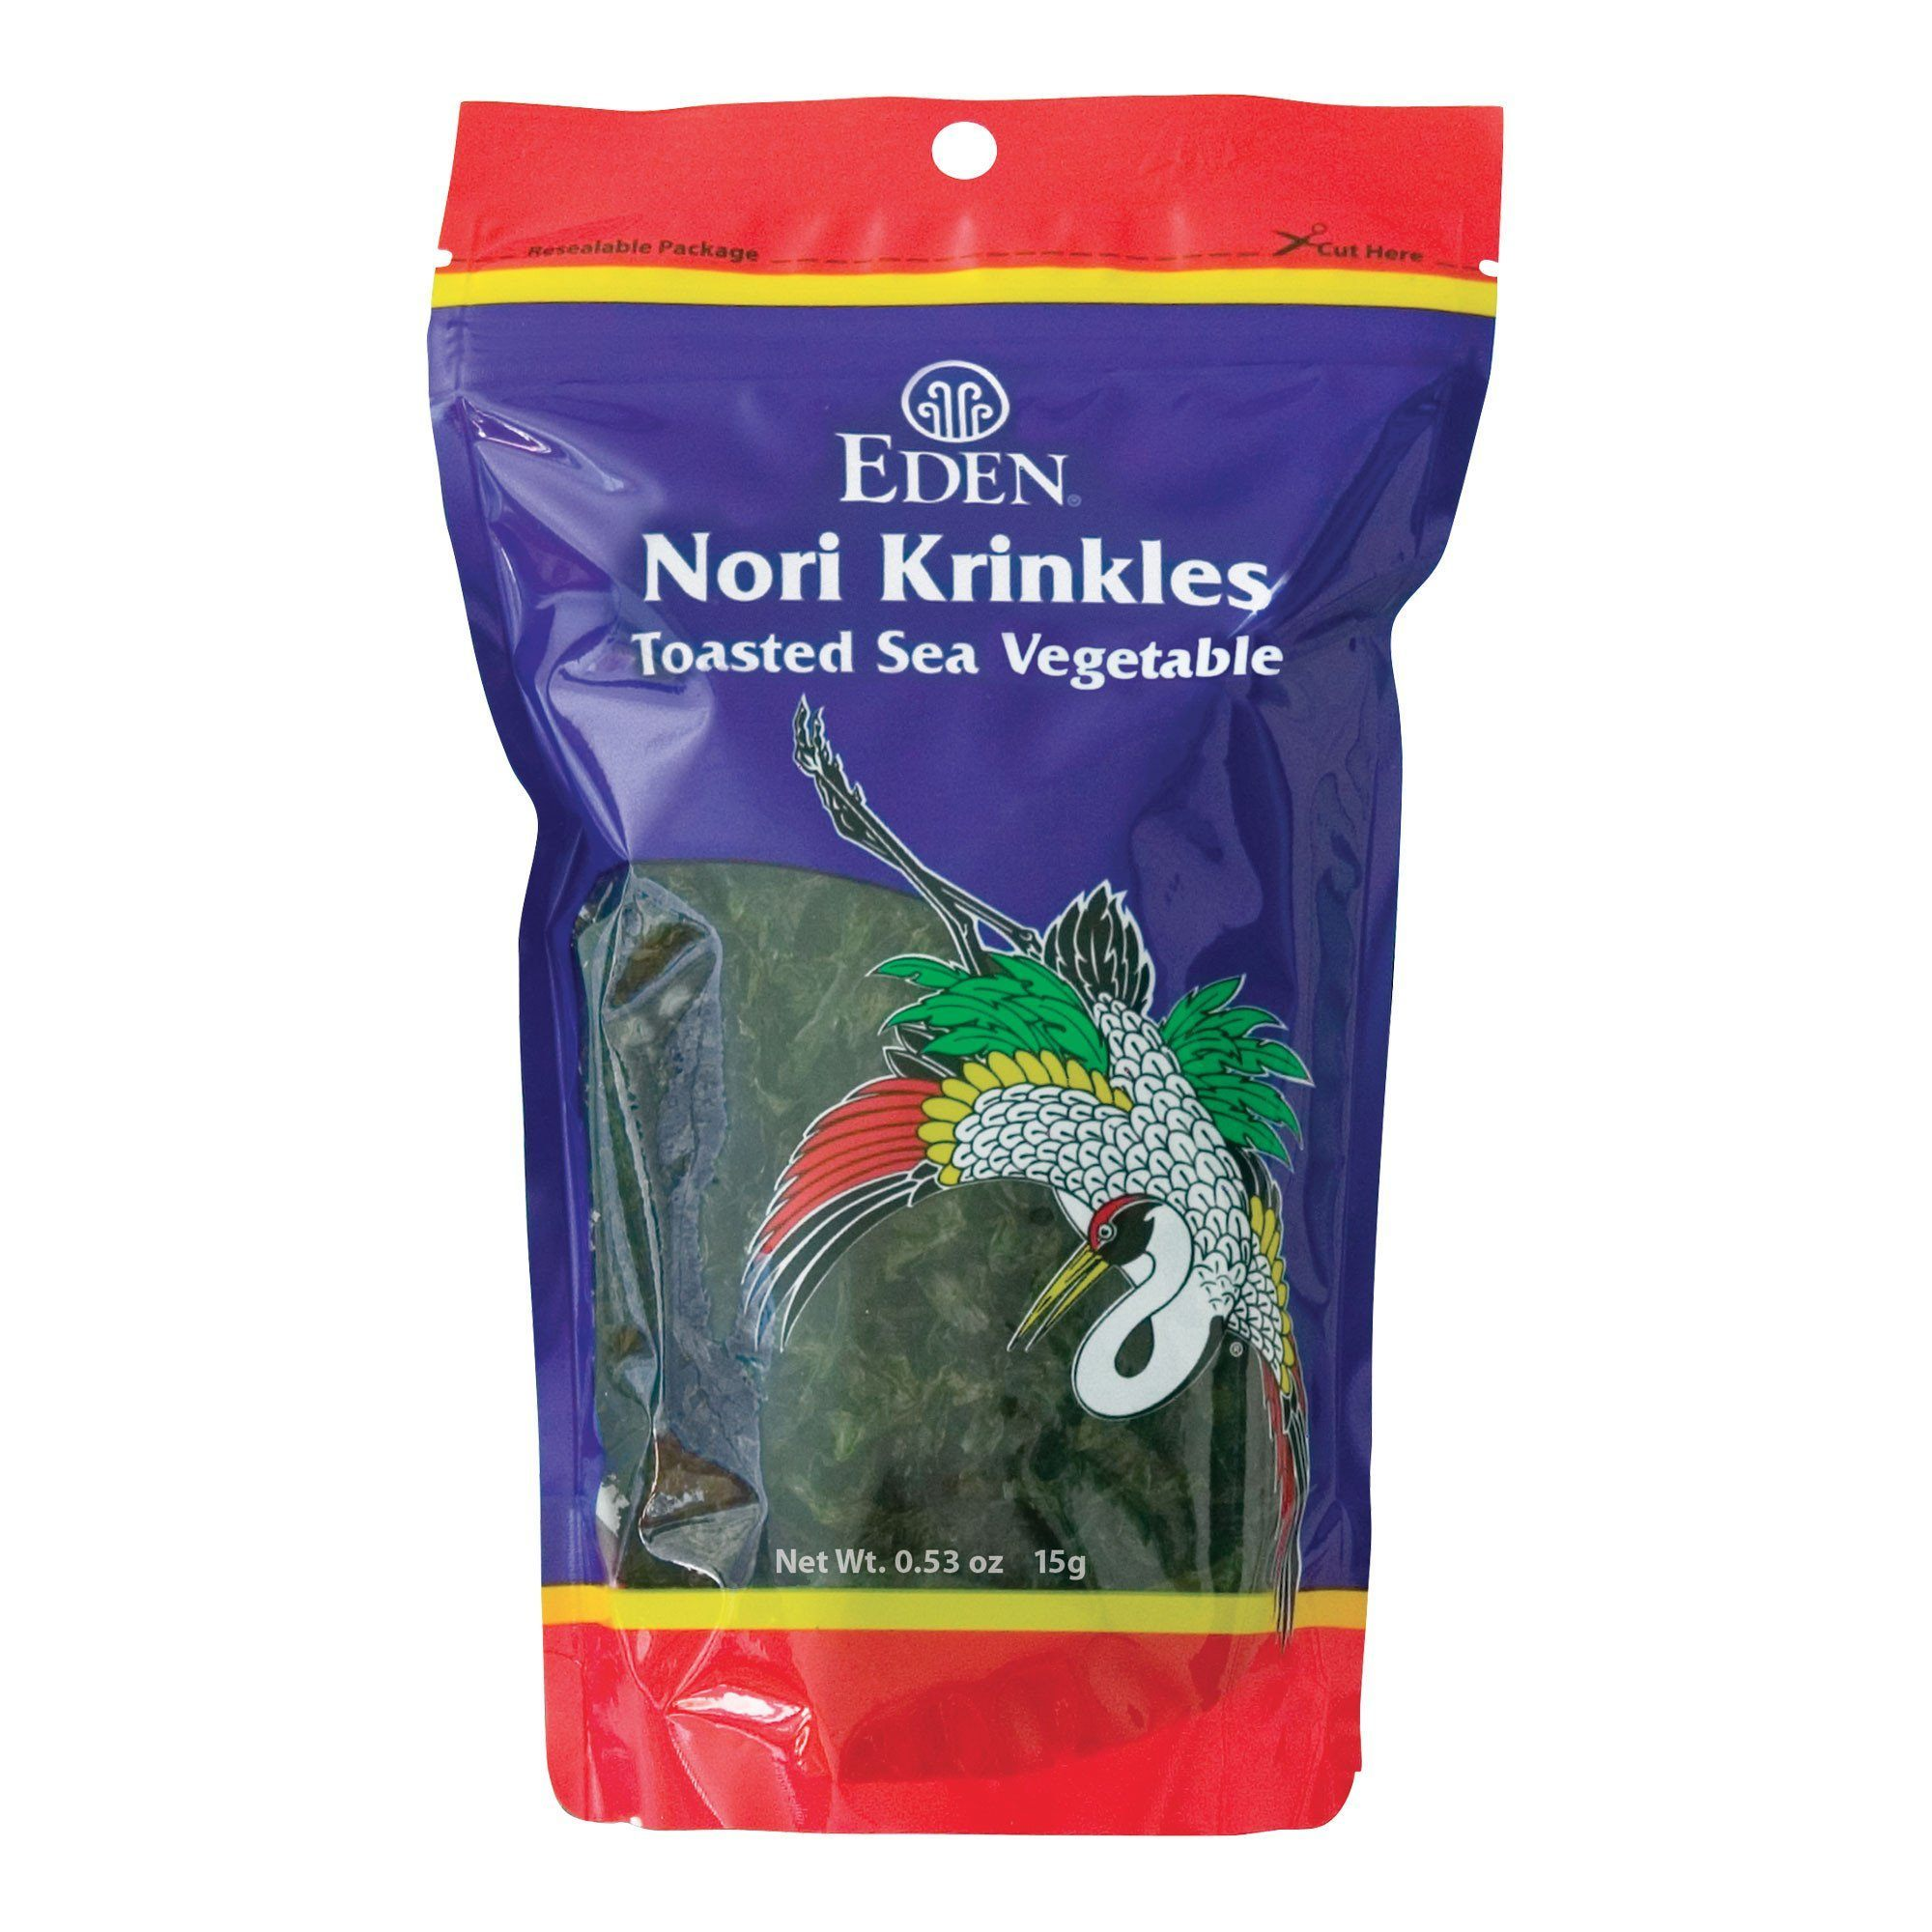 Food & Drink - Eden - Nori Sea Vegetable Krinkles, 15g